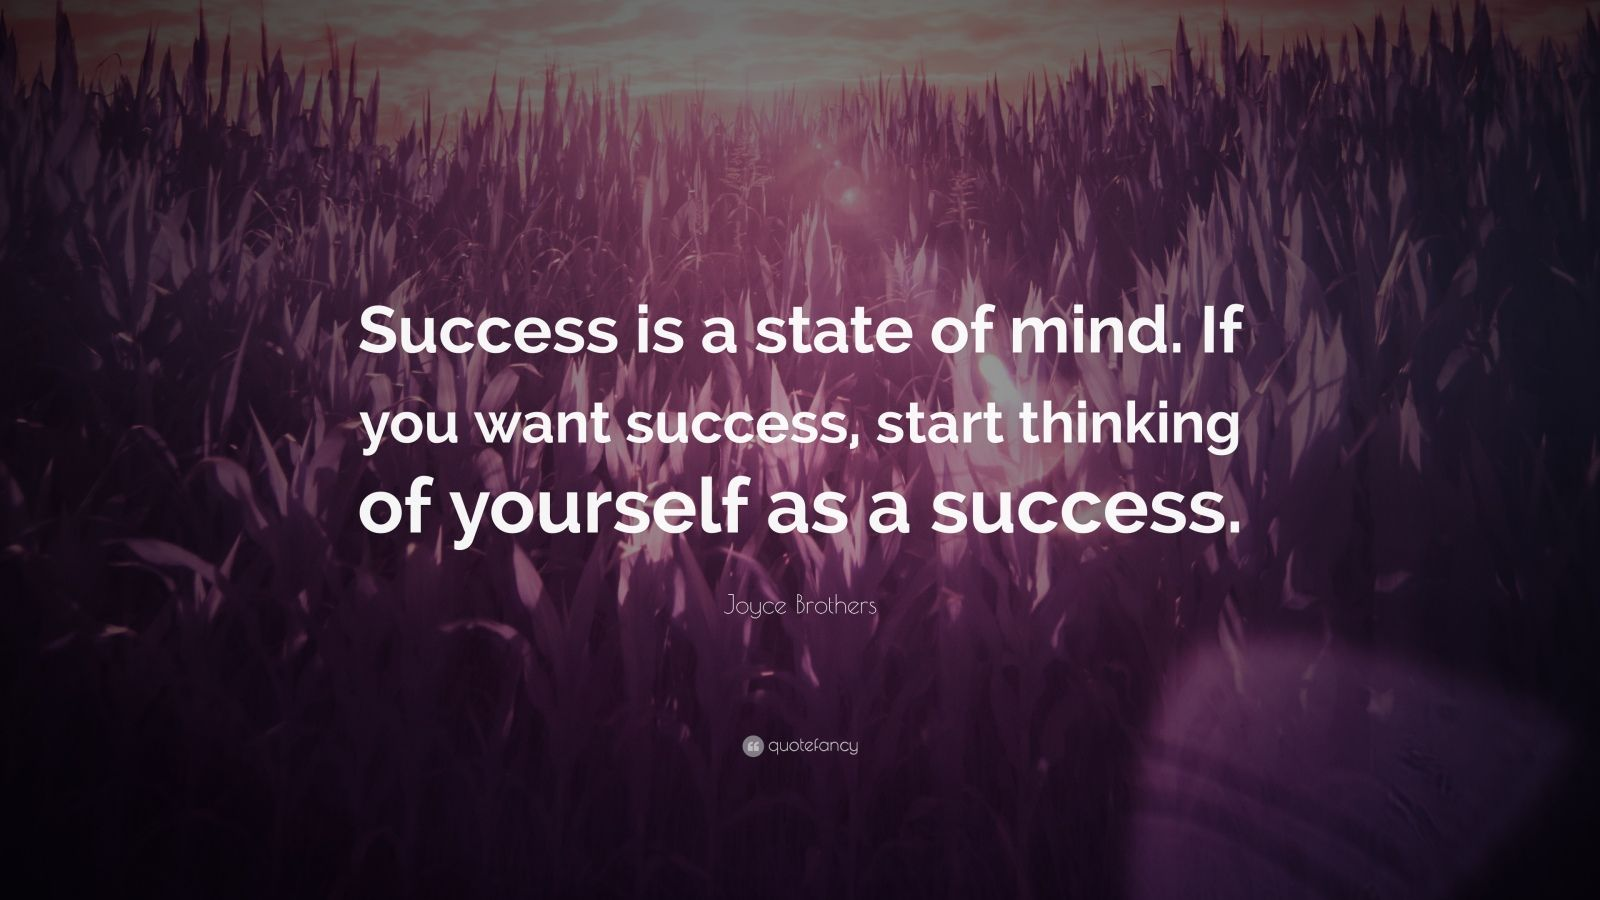 Steve Jobs Motivational Quotes Wallpaper Joyce Brothers Quote Success Is A State Of Mind If You